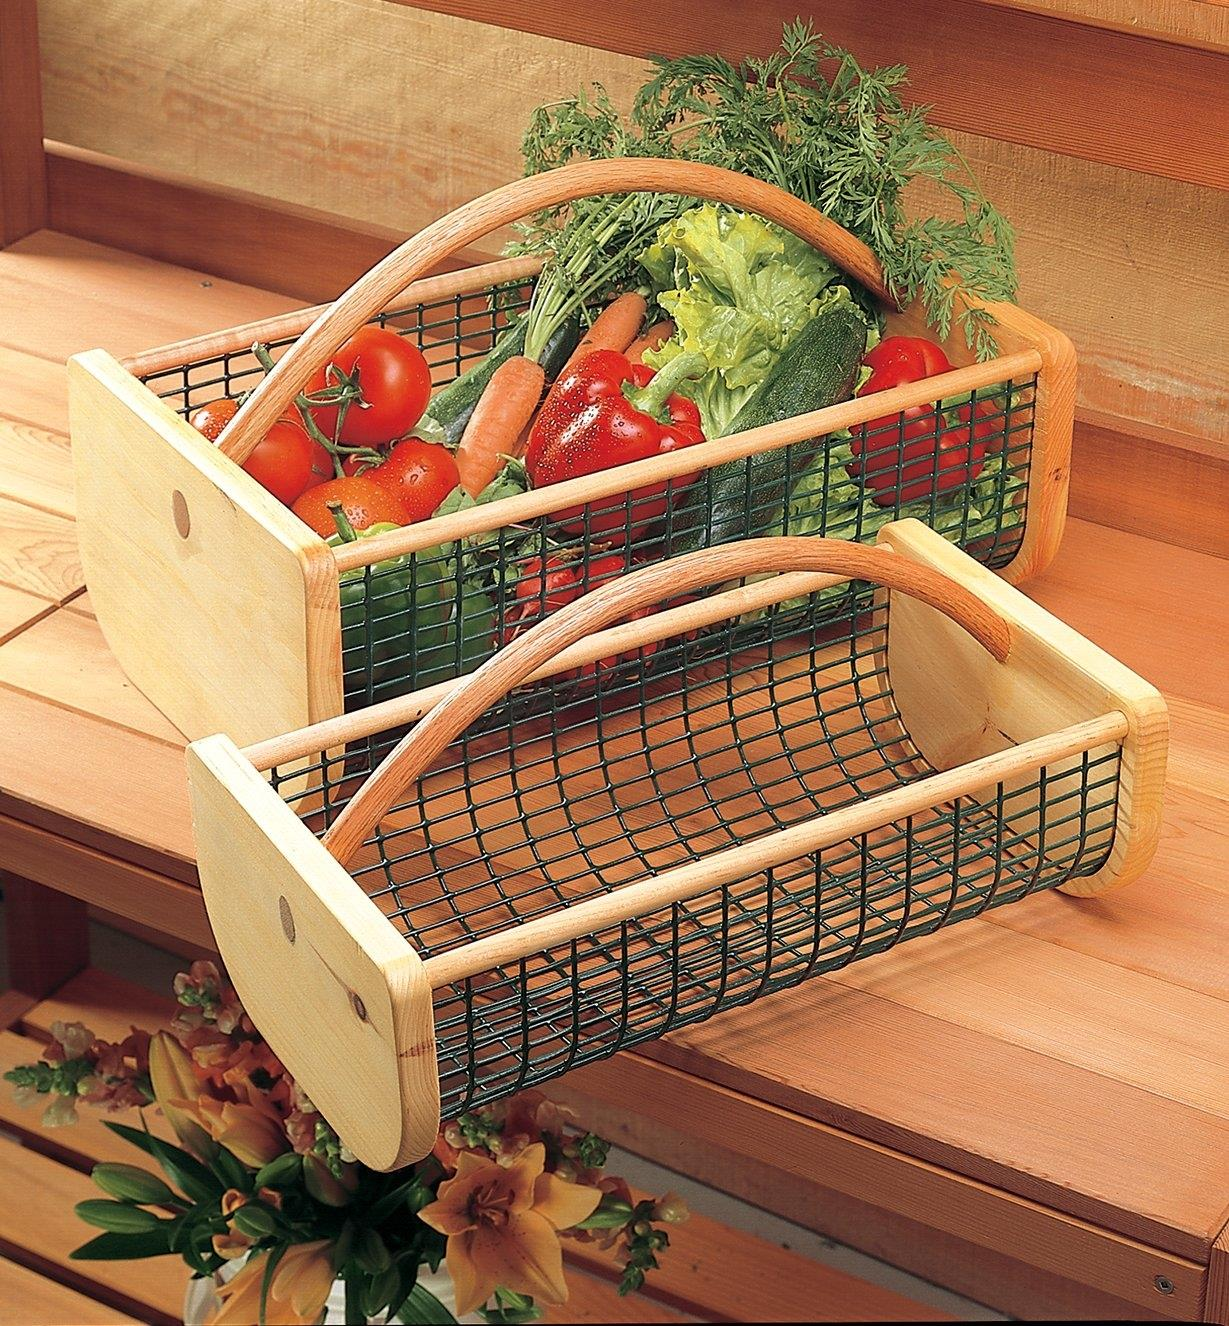 Large hod filled with vegetables next to an empty medium hod, sitting on a potting bench